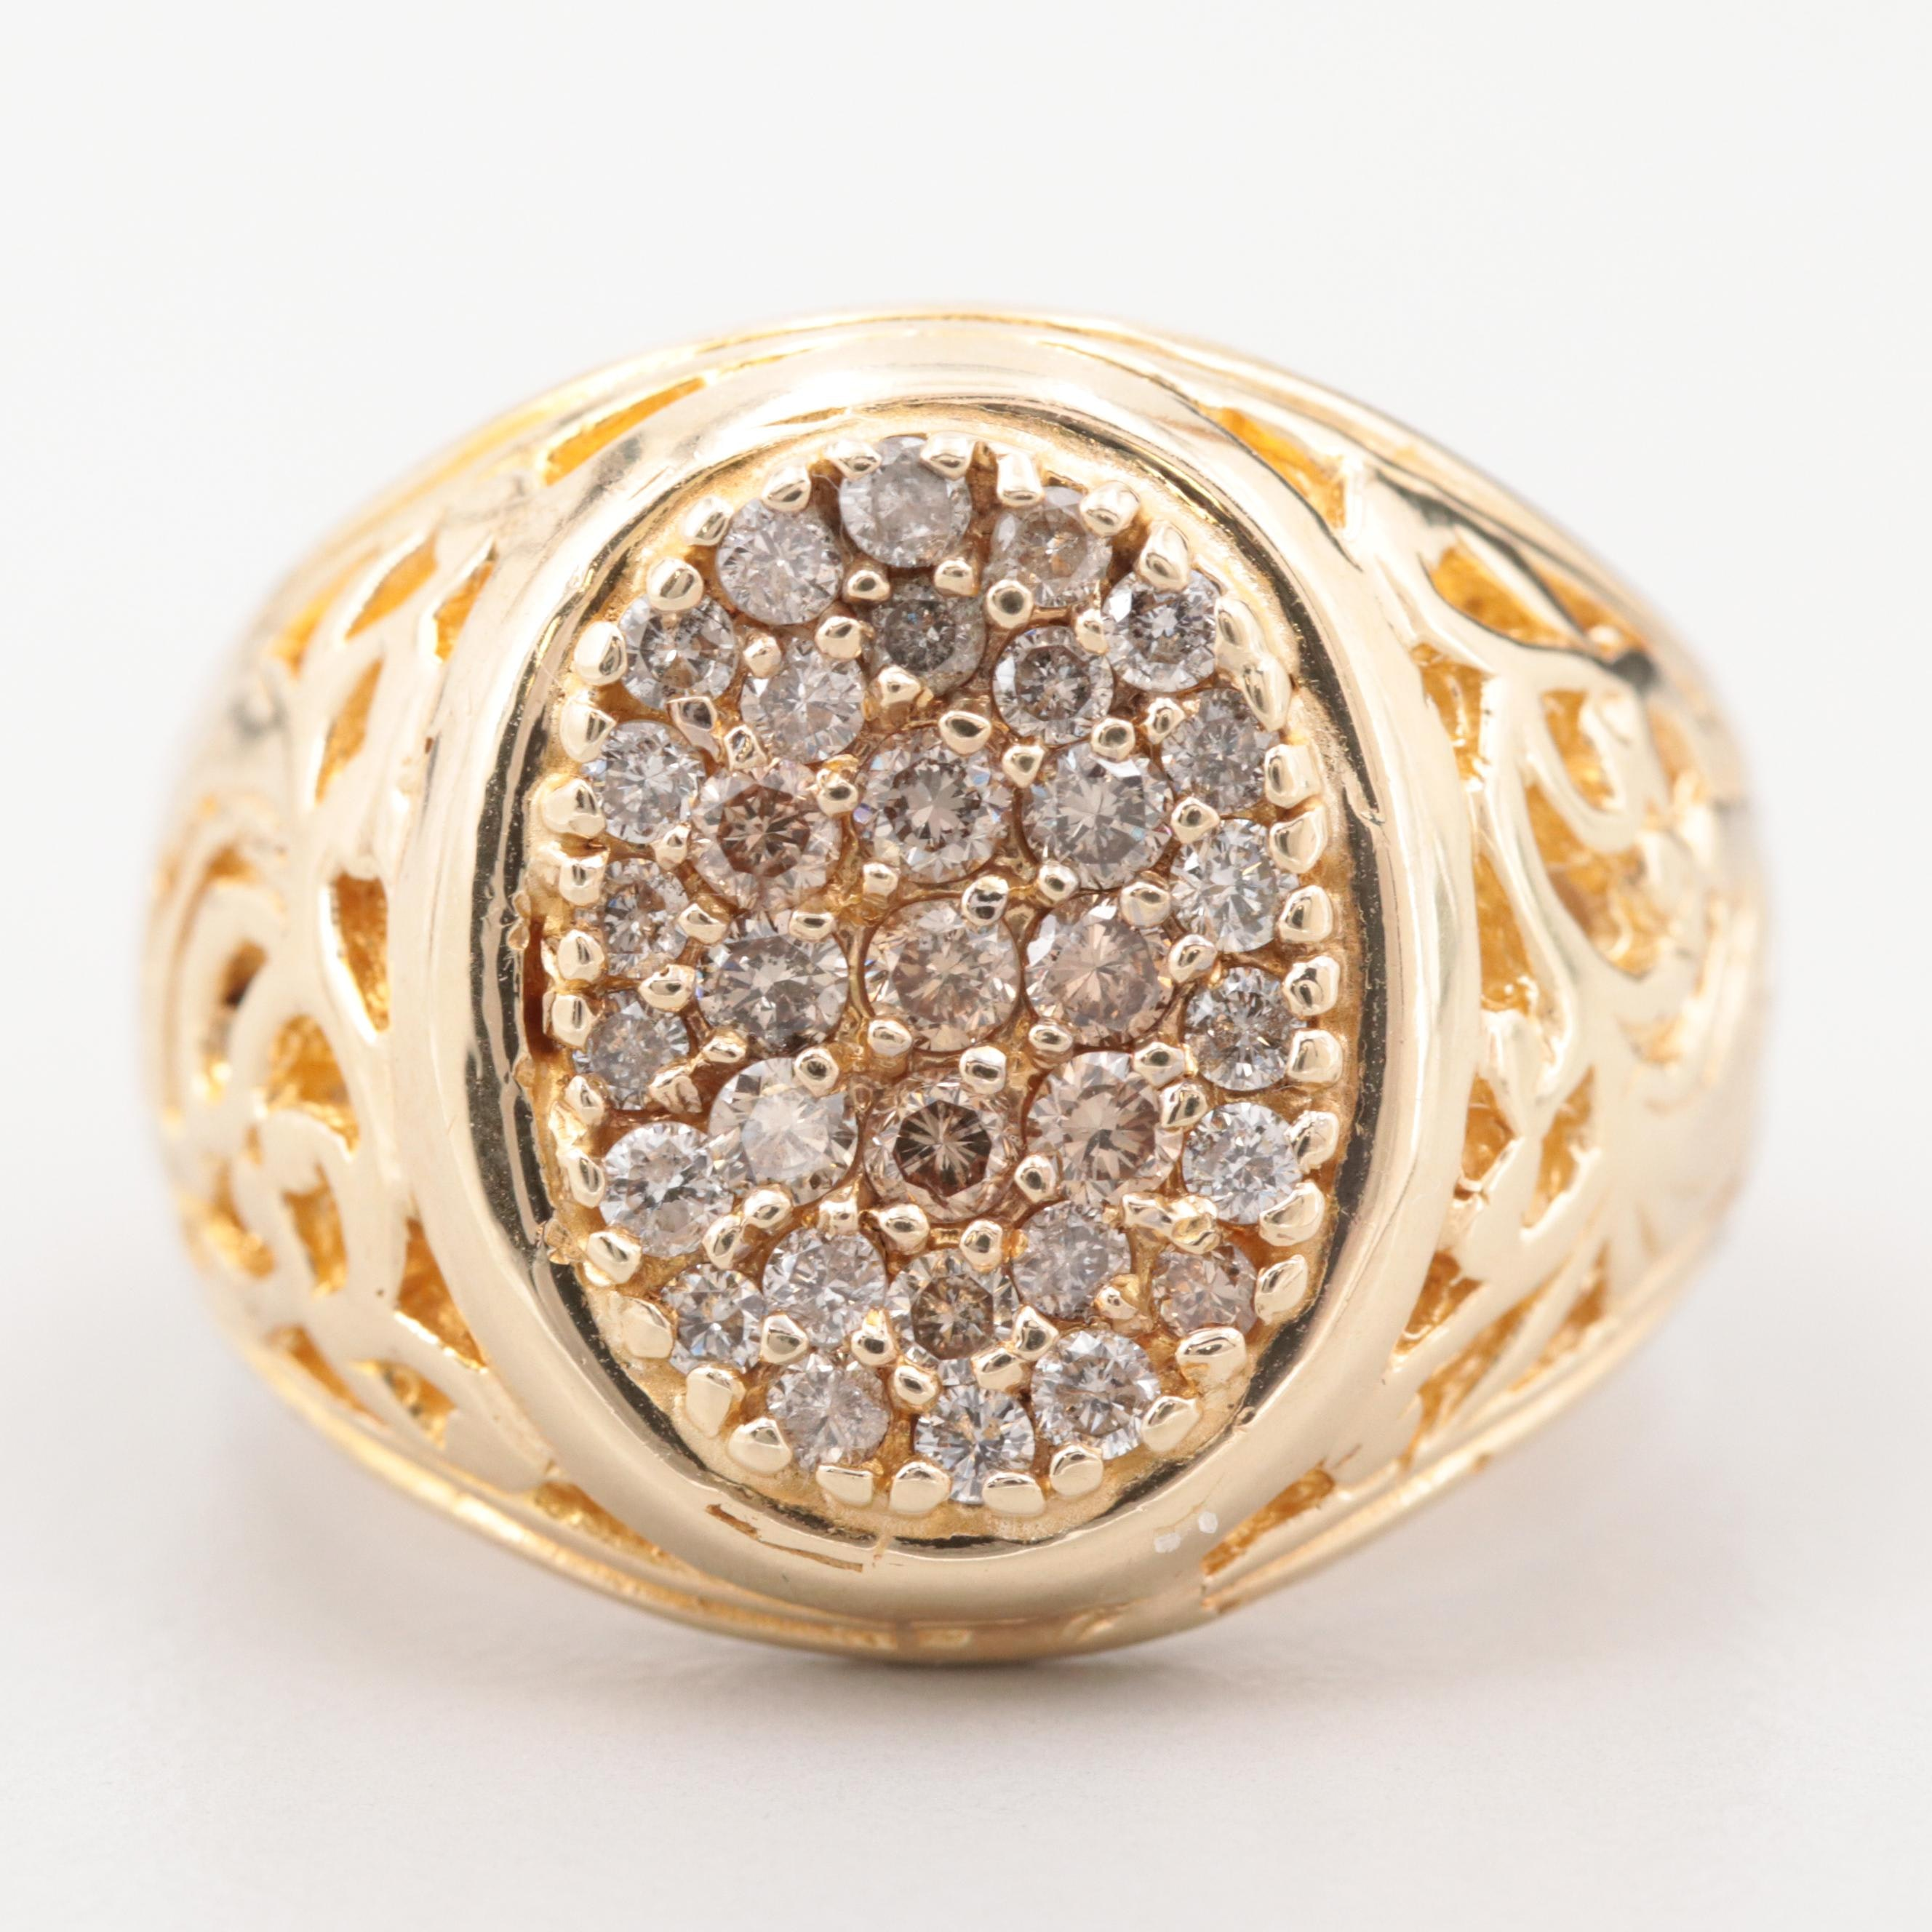 14K Yellow Gold Diamond Kentucky Cluster Ring with Openwork Detailing